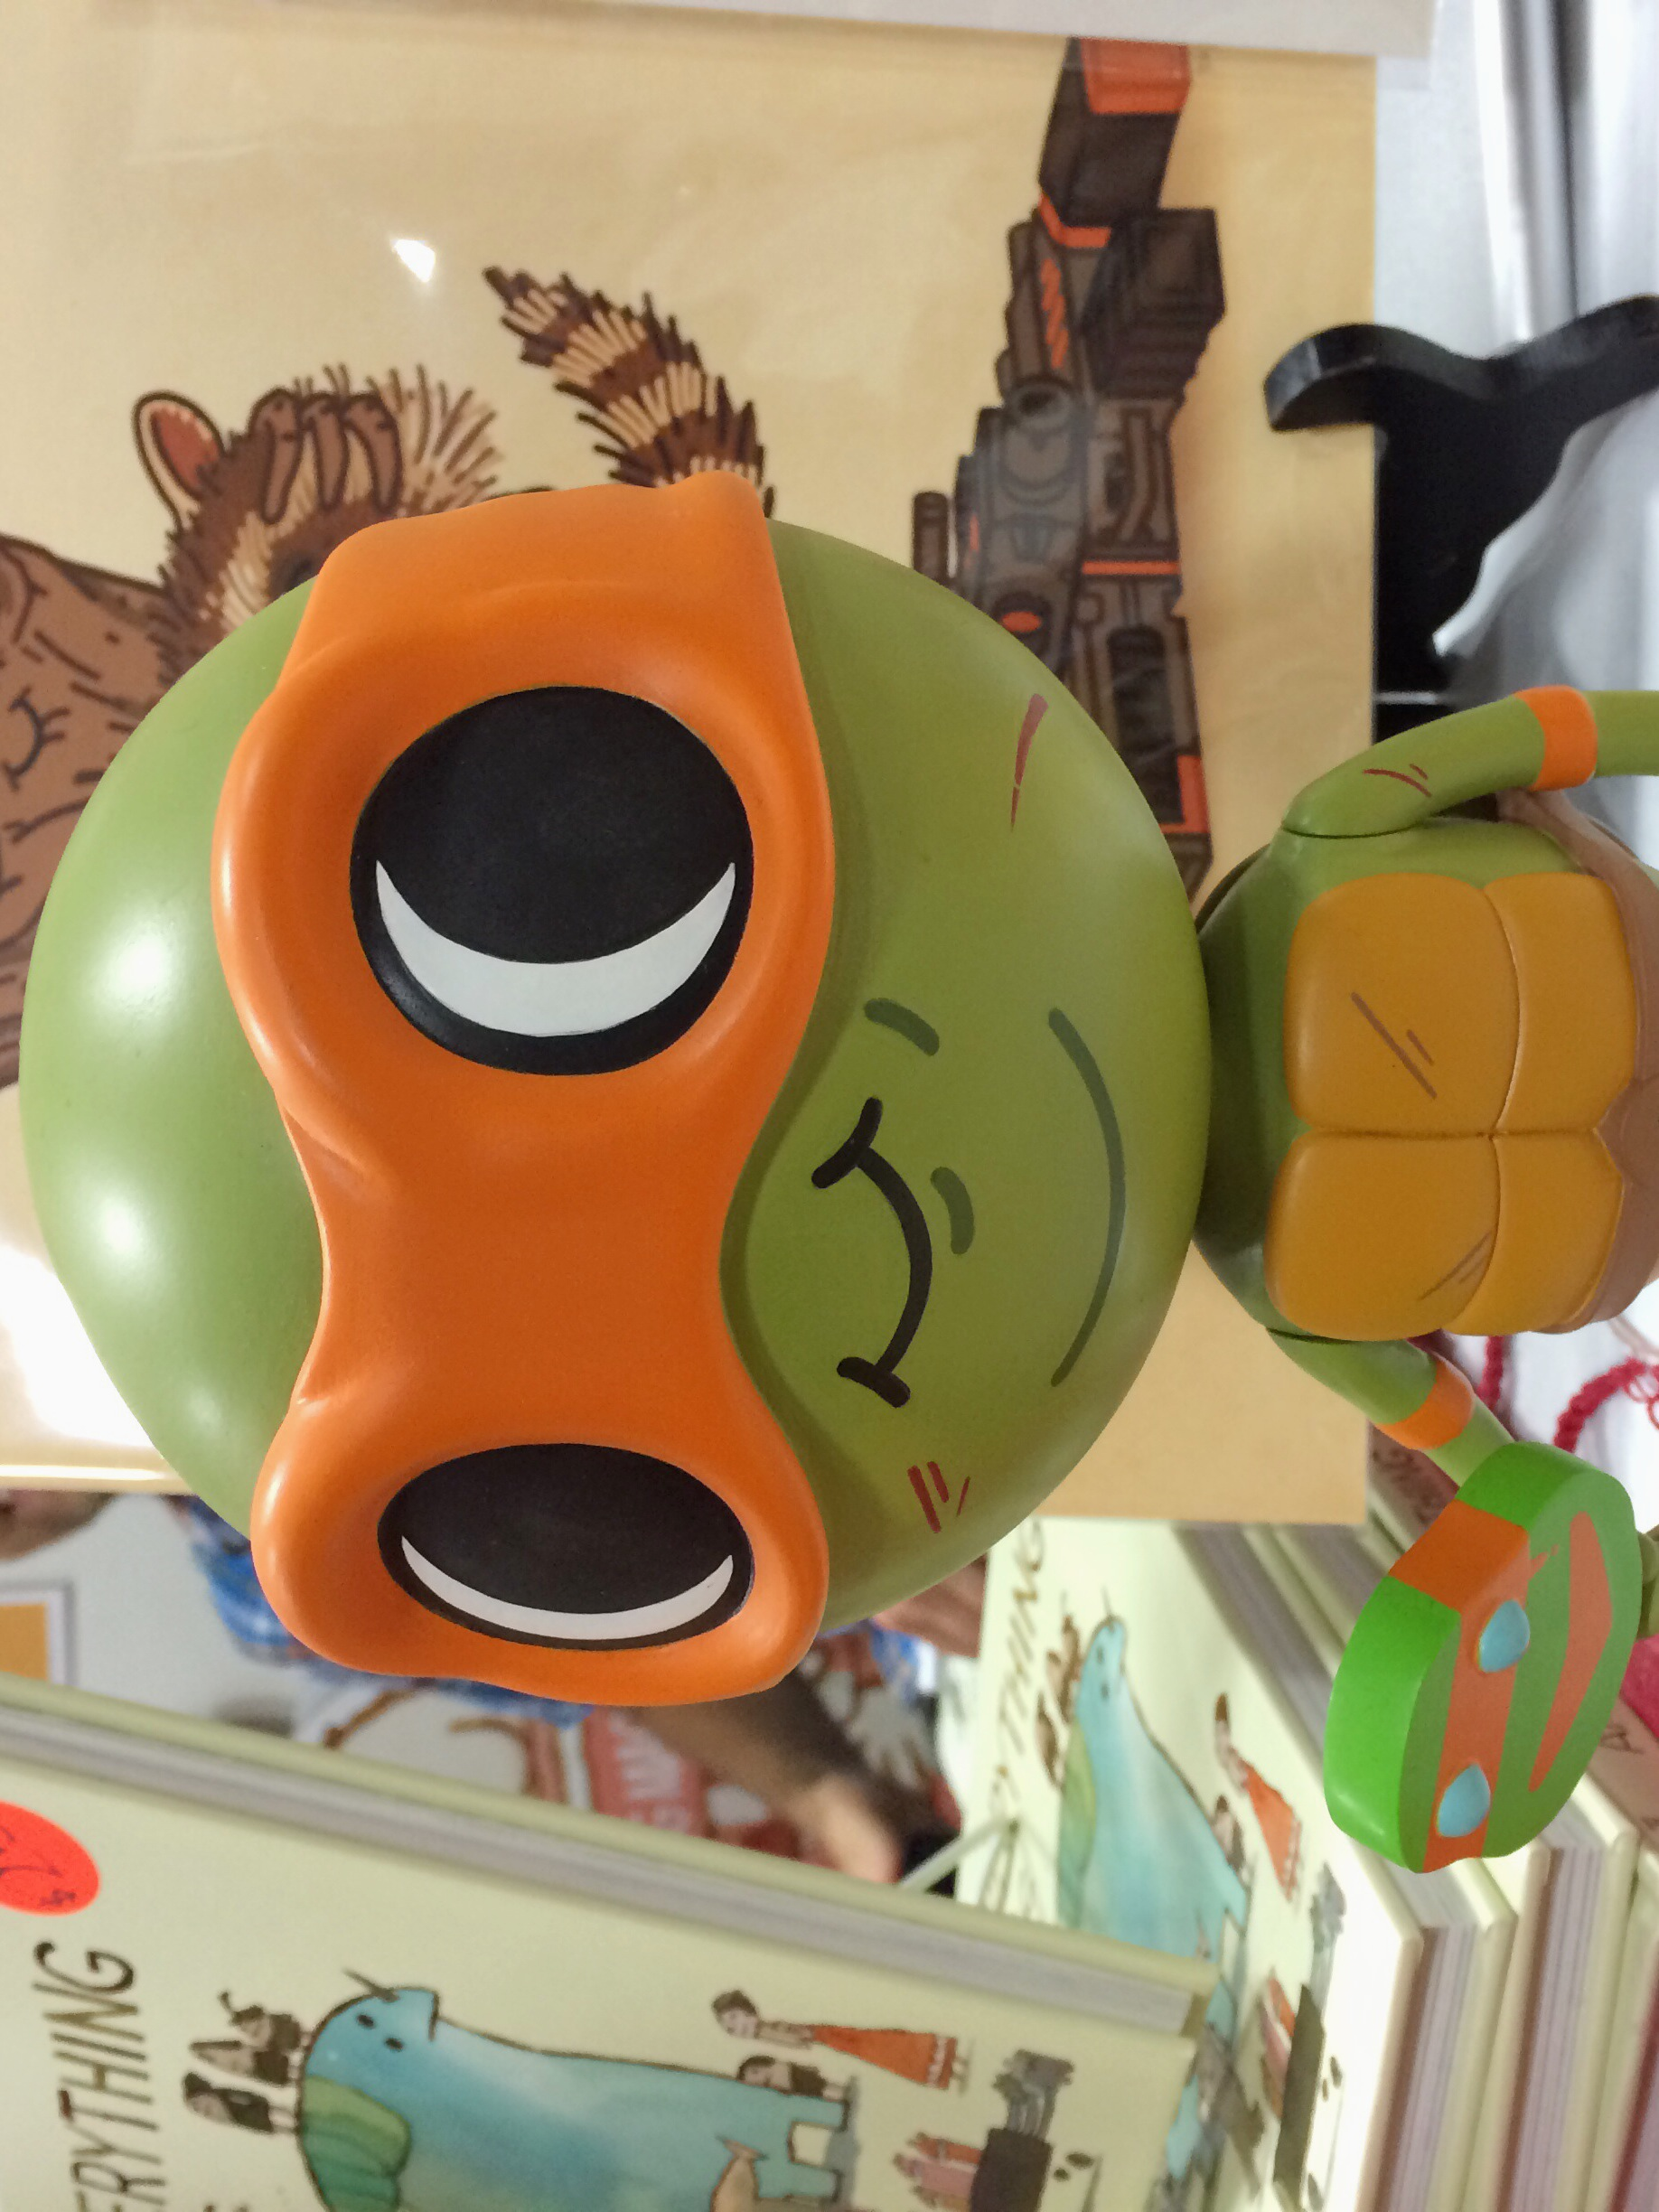 Mondo started with posters, moved into records, and now they're taking on toys. Of course, one of their first toys will be a Michelangelo based off Mike Mitchell artwork. I can't wait to go broke trying to get my hands on one of these!